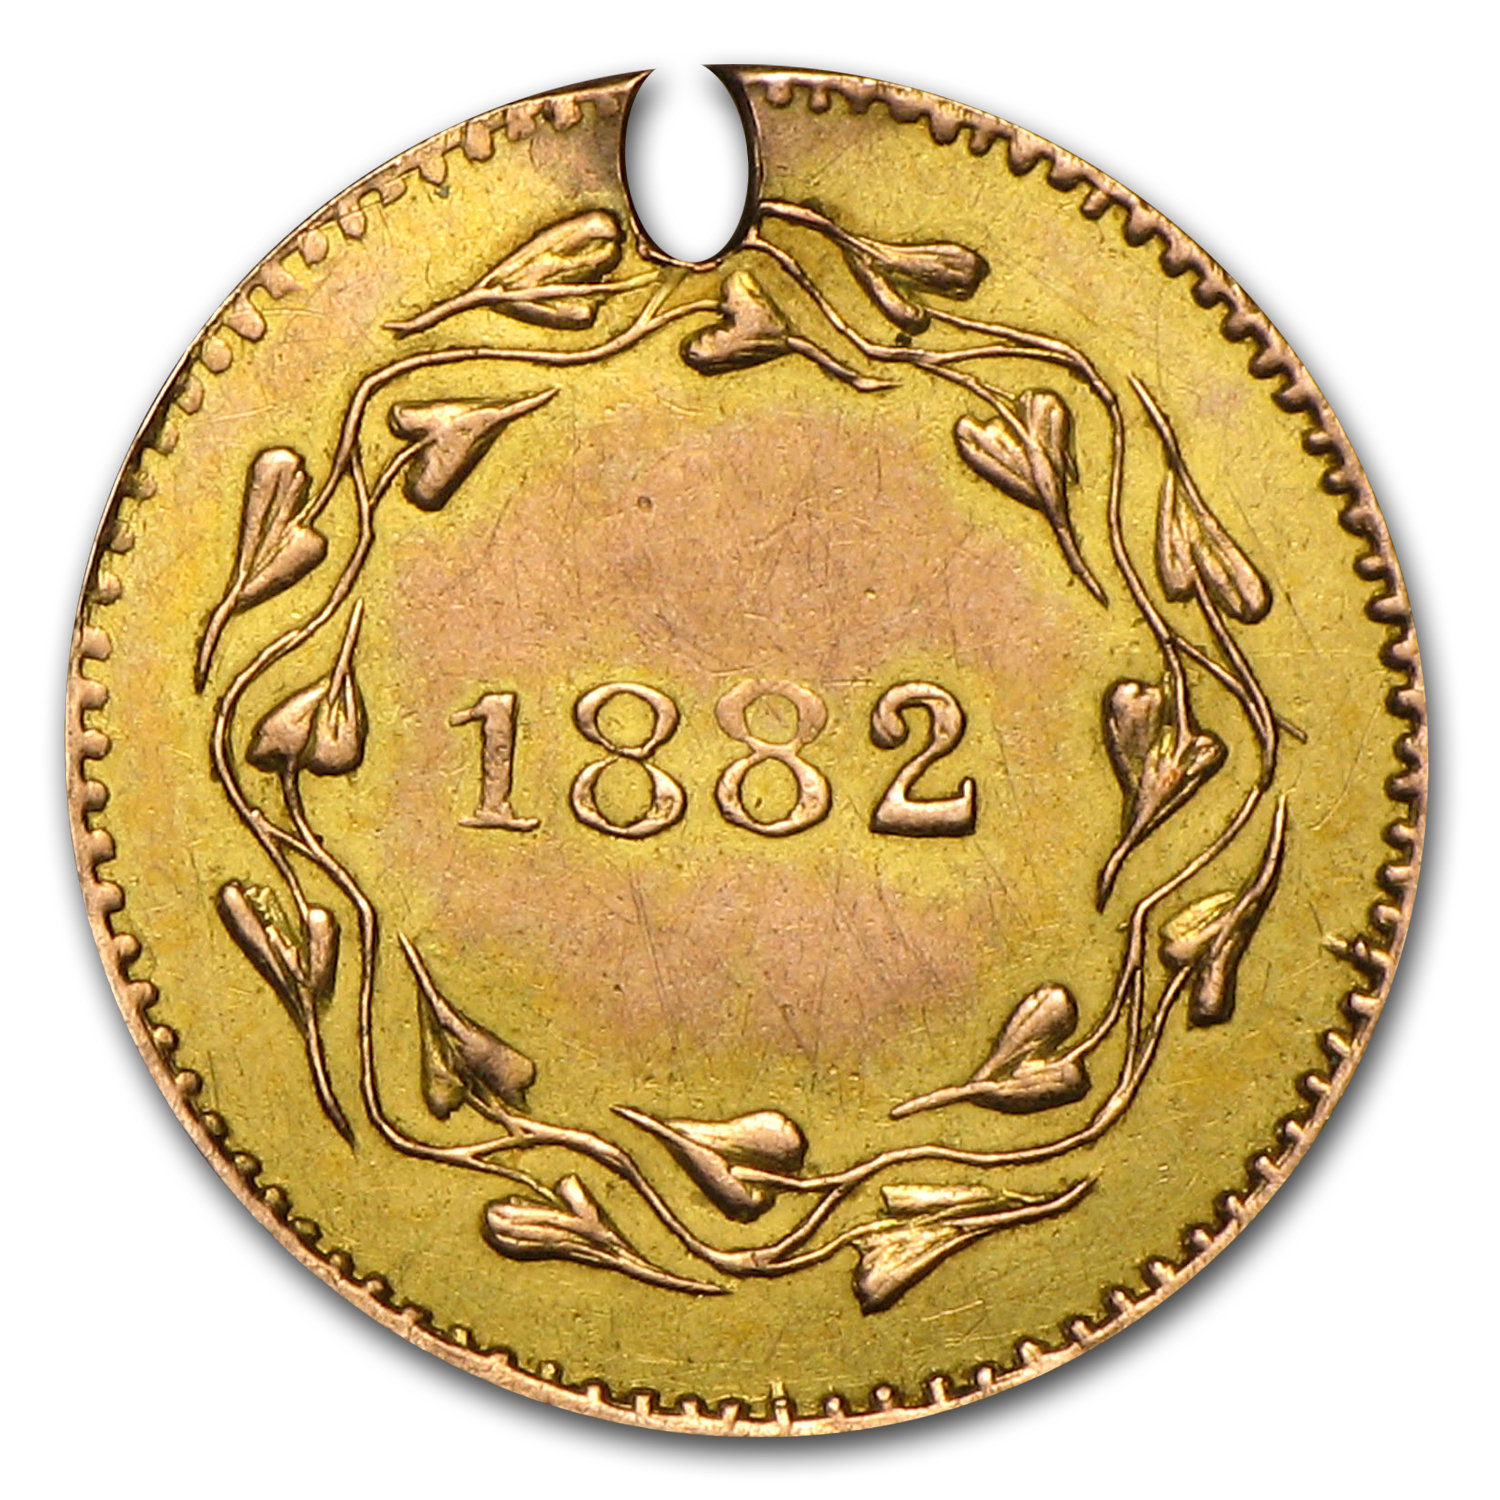 1882 Heron Round Wreath Gold Token AU Details (Holed)